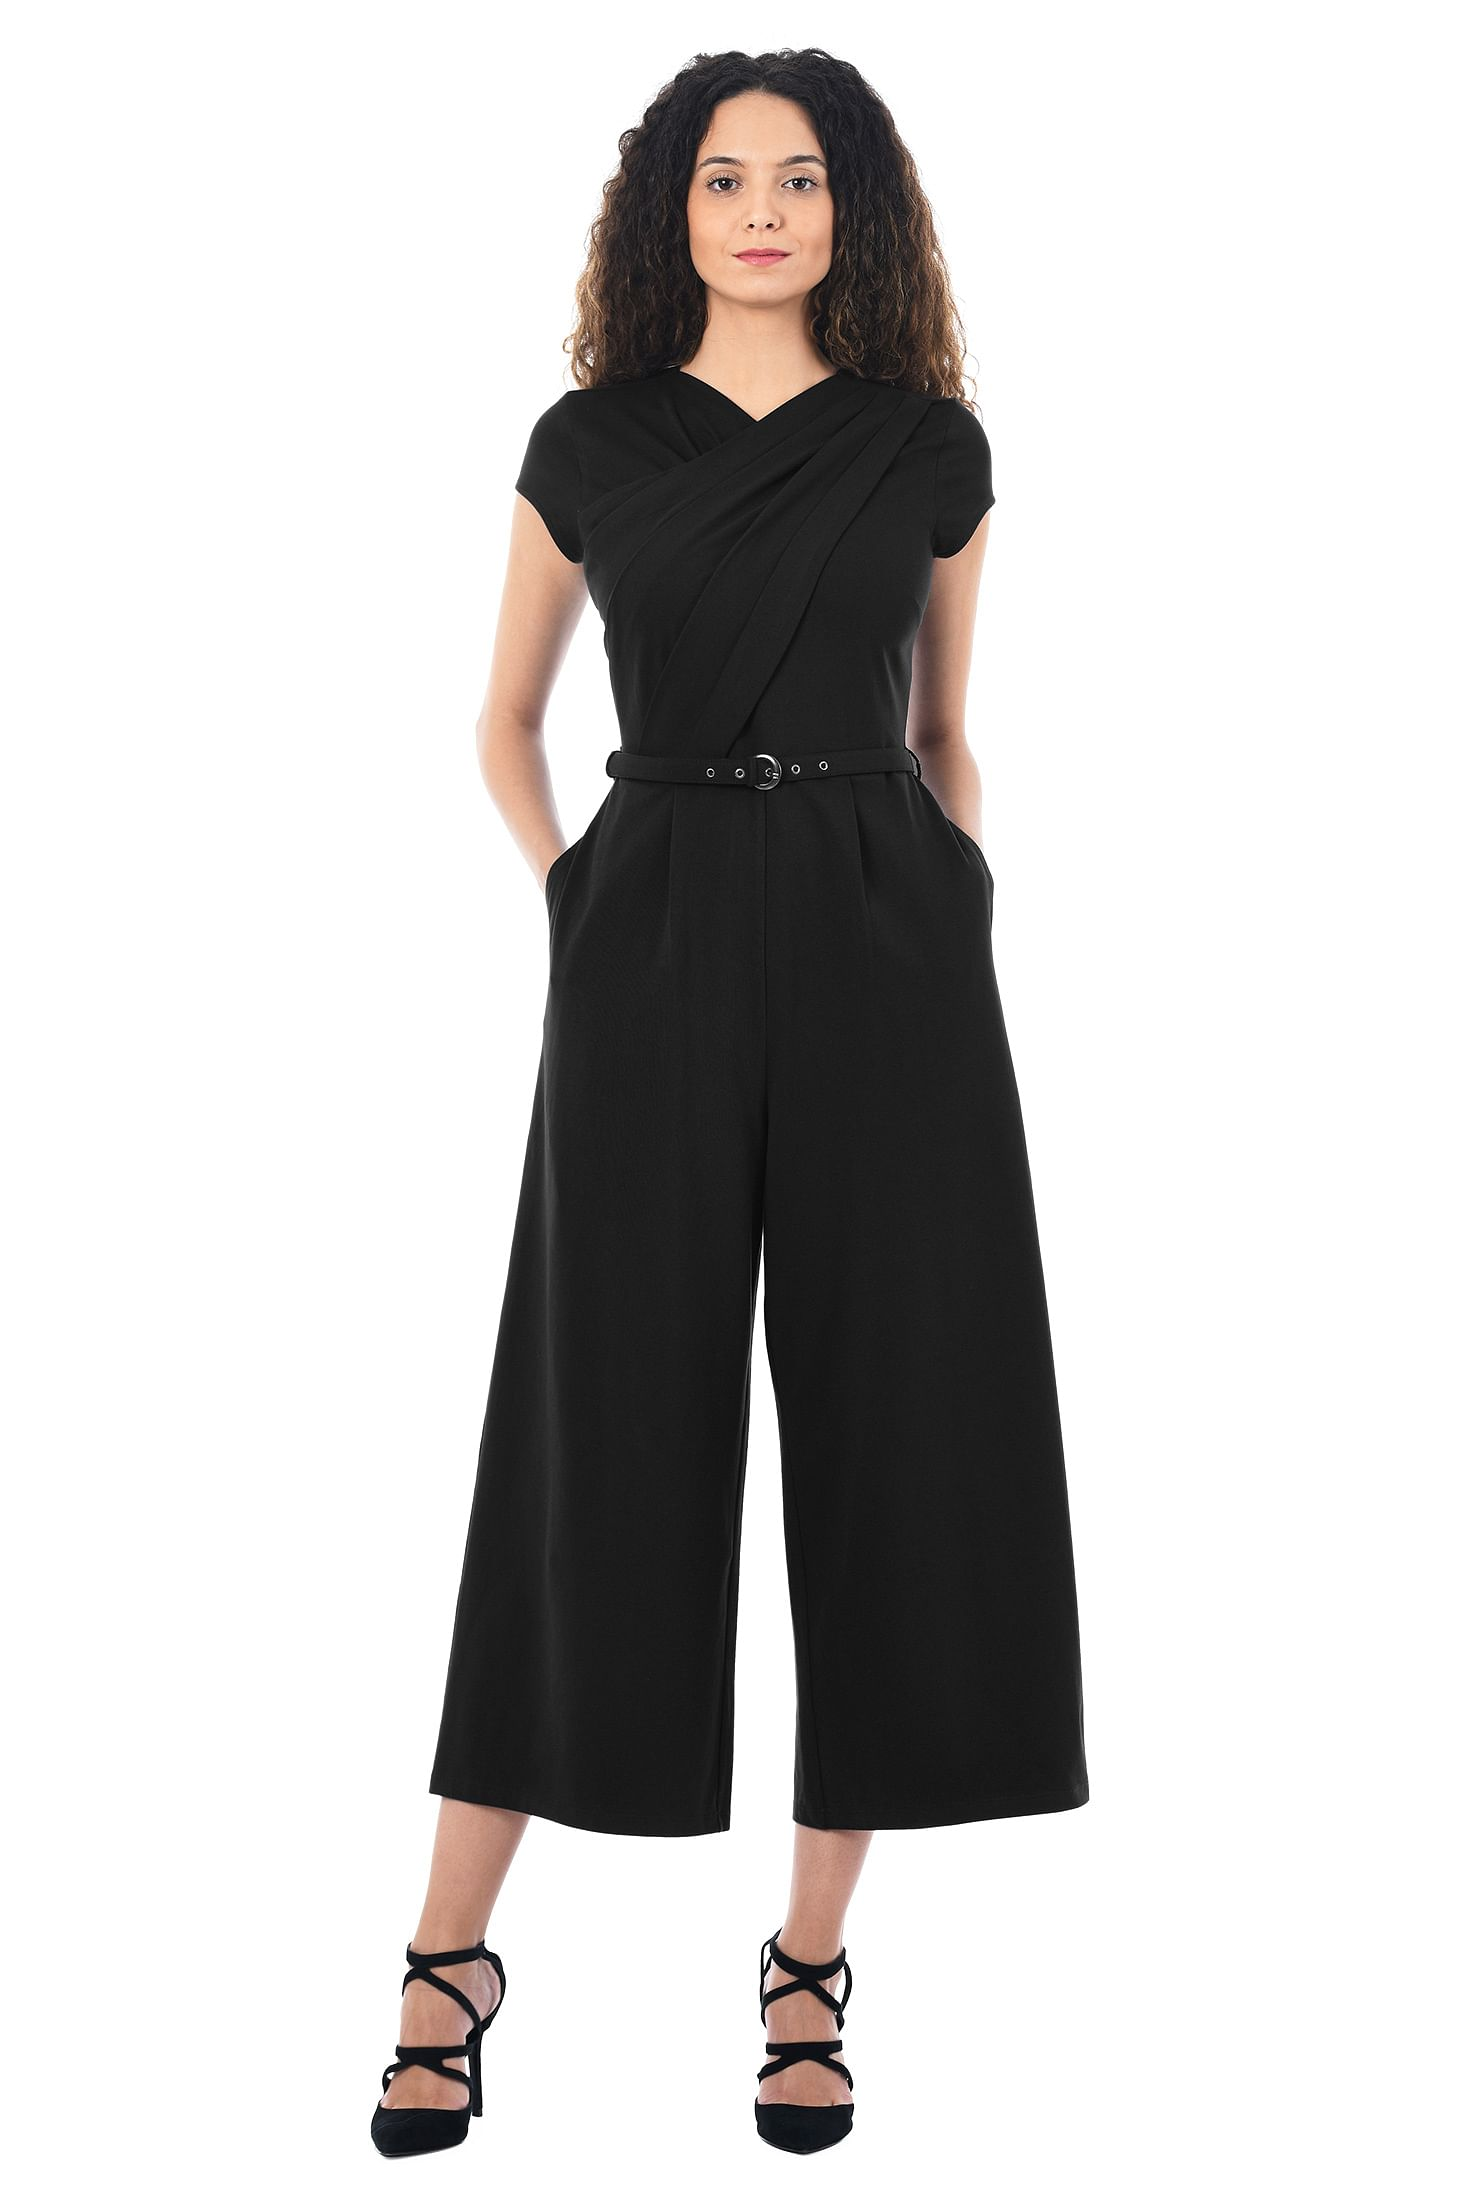 eShakti Women's Pleat front cotton jersey knit jumpsuit